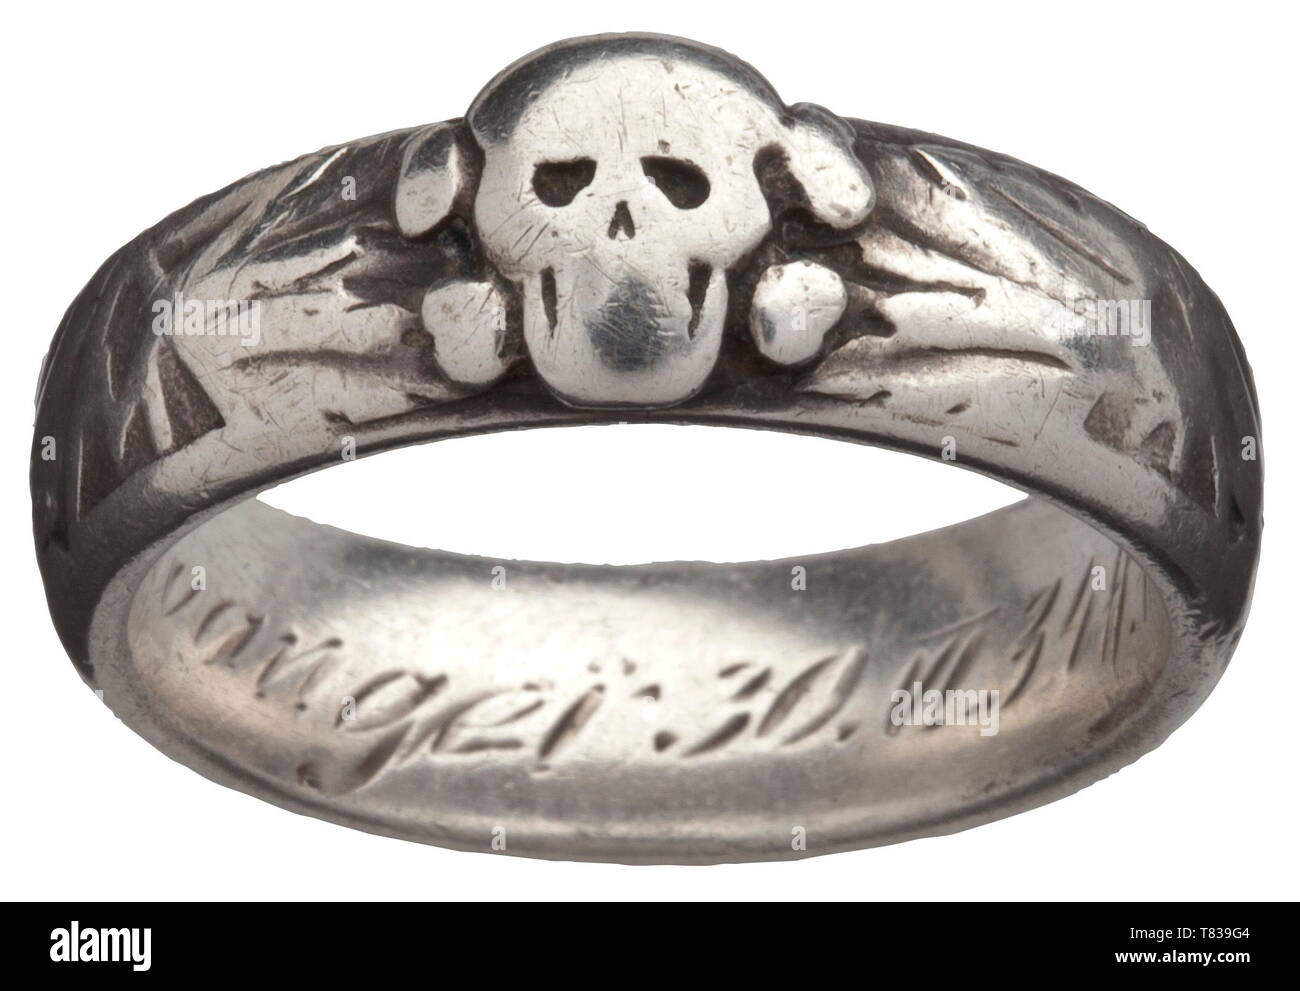 """An SS honour ring custom-made by the jeweller Gahr in Munich, soldered underneath the separately applied death's head, the inside surface with engraved dedication """"S.lb. Ellwanger 30.VI.34 H. Himmler"""". Weight 9.7 grammes, inside diameter 20 mm, heavily used. The ring comes from family possession and has never been in collectors´ hands before. historic, historical, 20th century, 1930s, 1940s, Waffen-SS, armed division of the SS, armed service, armed services, NS, National Socialism, Nazism, Third Reich, German Reich, Germany, military, militaria, utensil, piece of equipment, Editorial-Use-Only Stock Photo"""